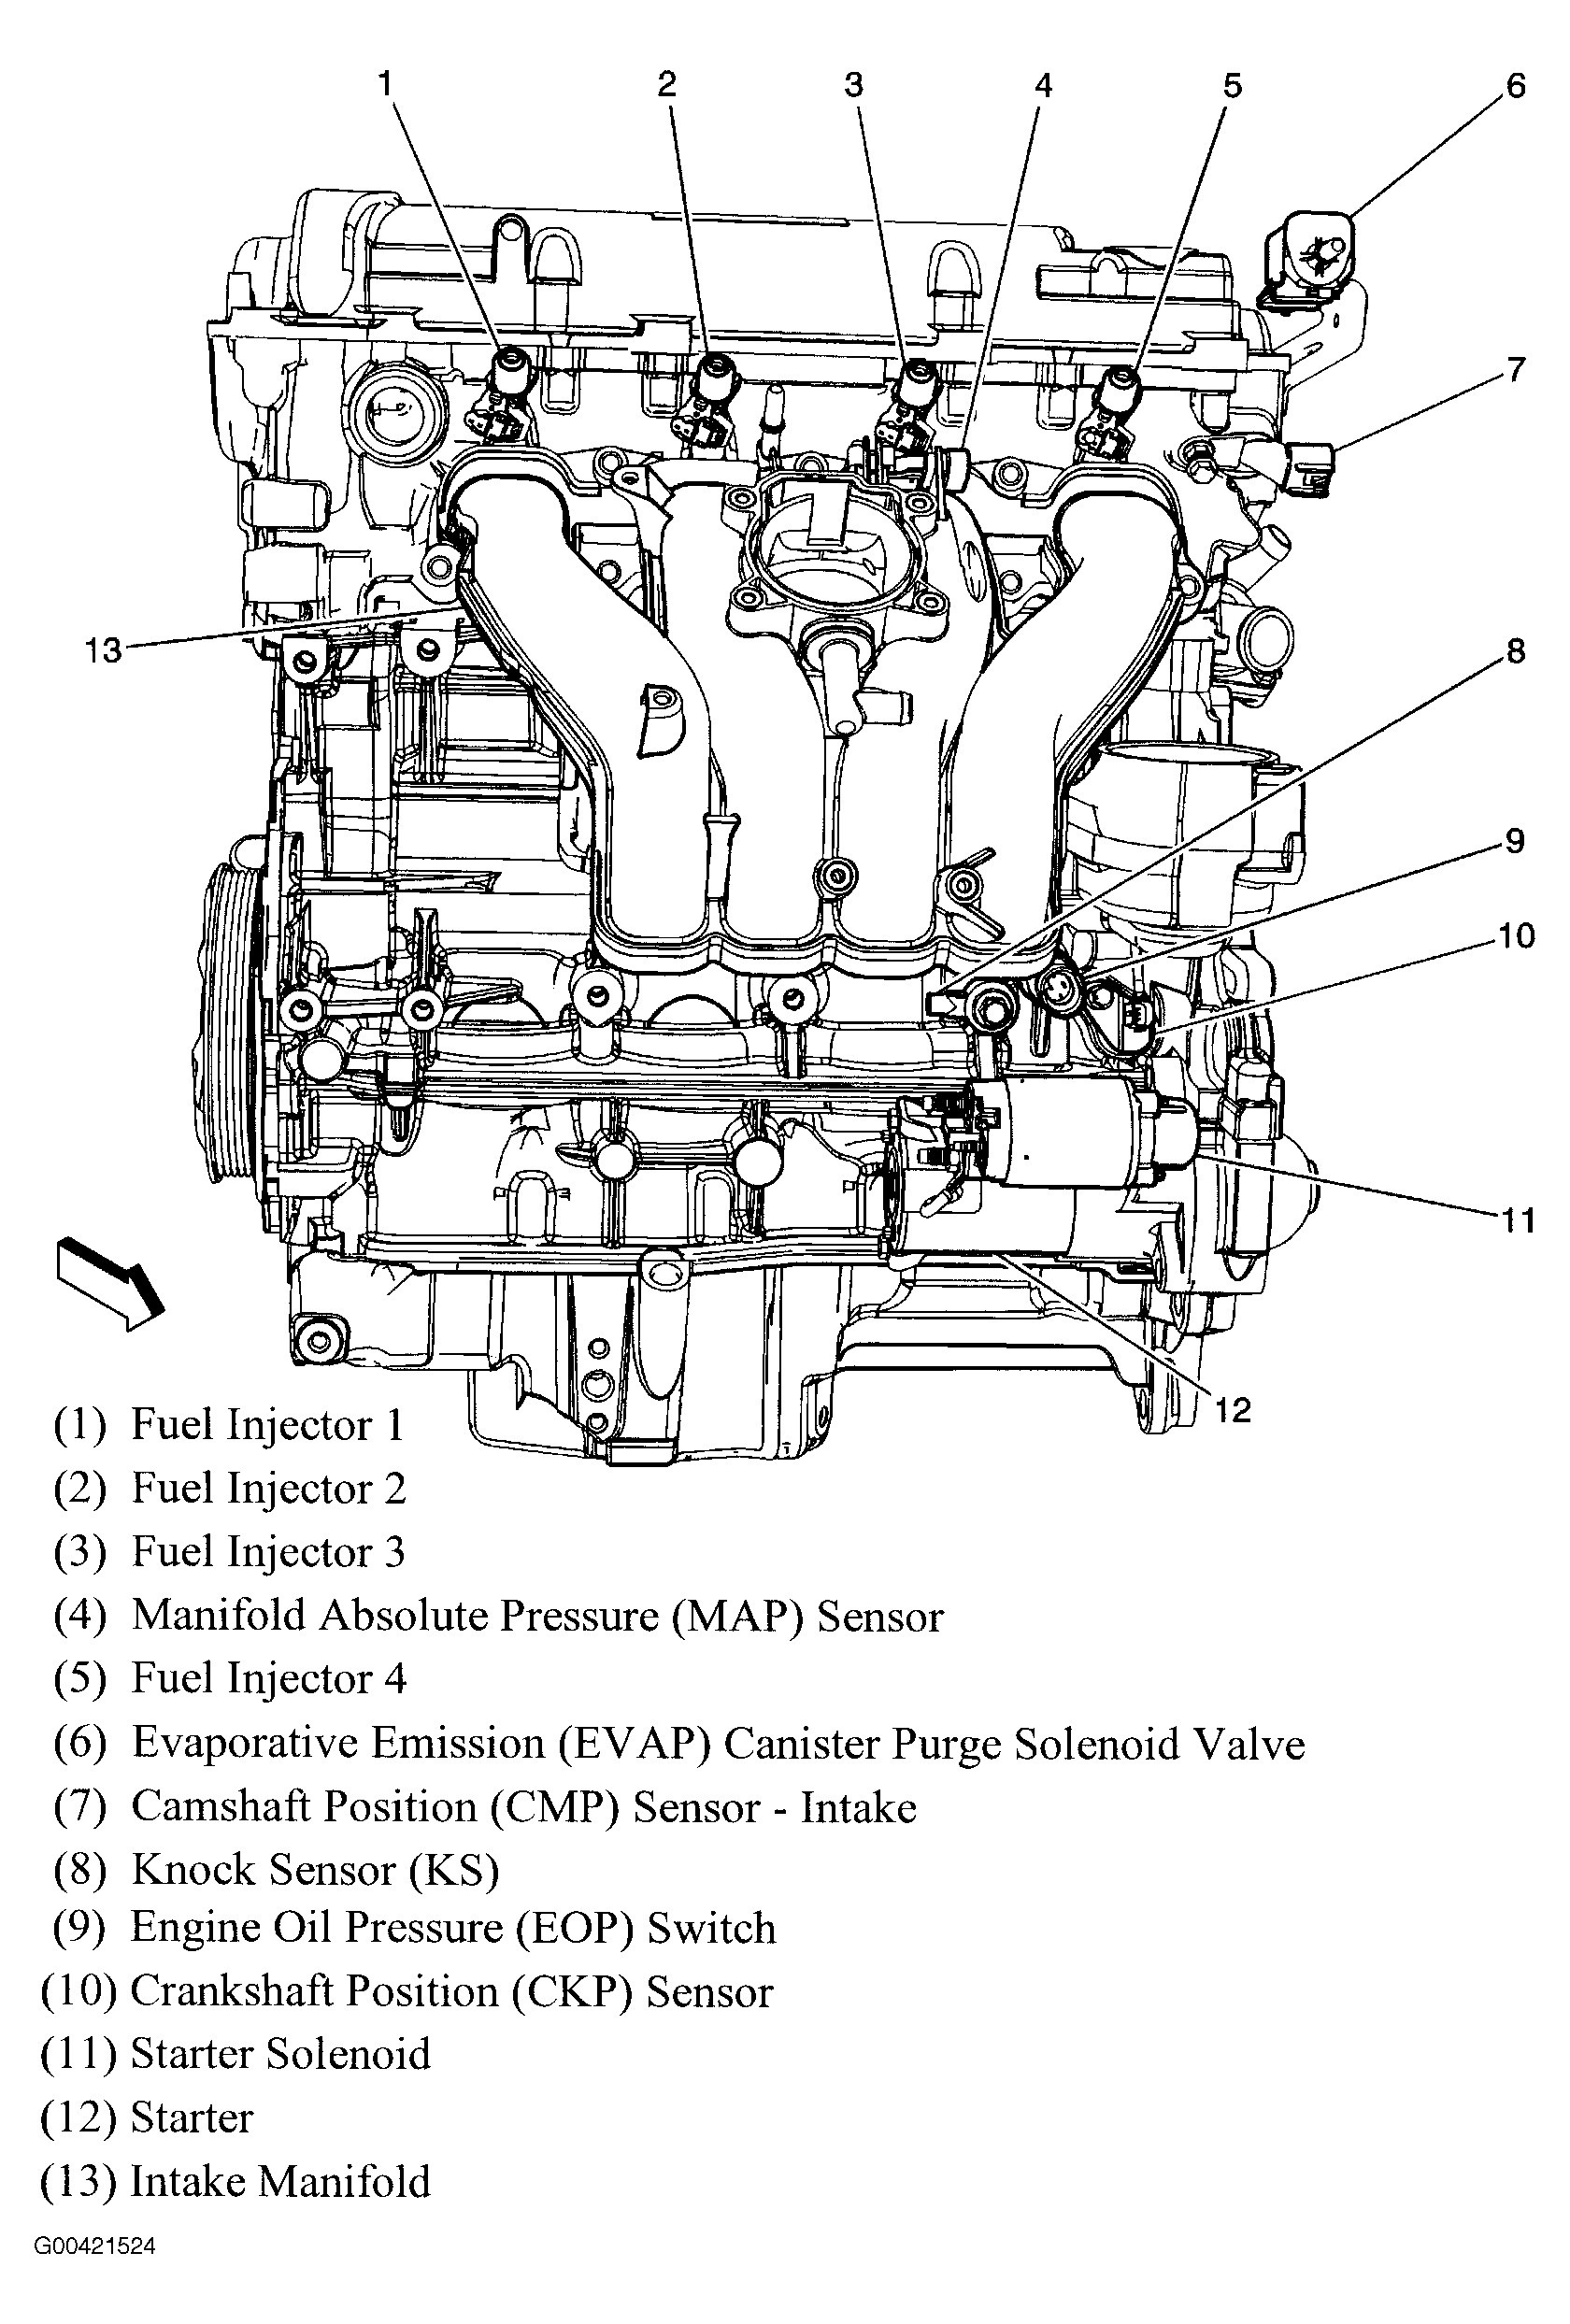 hight resolution of wiring diagram for 08 chevy aveo wiring diagram paper 2008 chevy aveo engine diagram wiring diagram